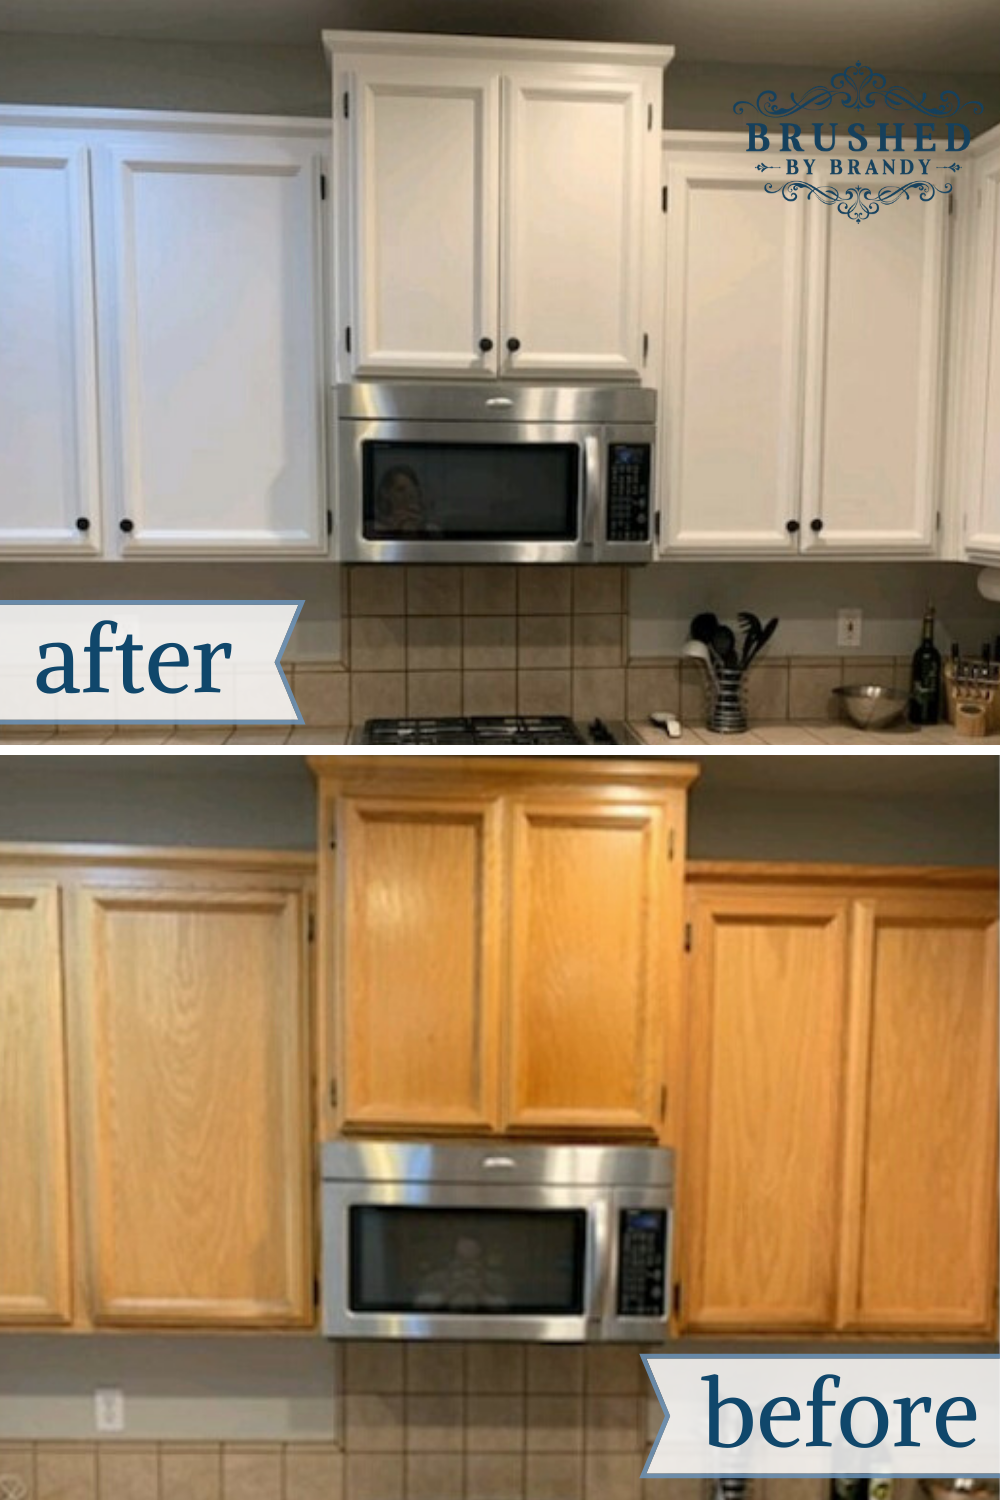 Diy Painted Kitchen Cabinet Makeover Learn How To Paint White With In 2020 Diy Kitchen Cabinets Painting Chalk Paint Kitchen Cabinets Painting Kitchen Cabinets White